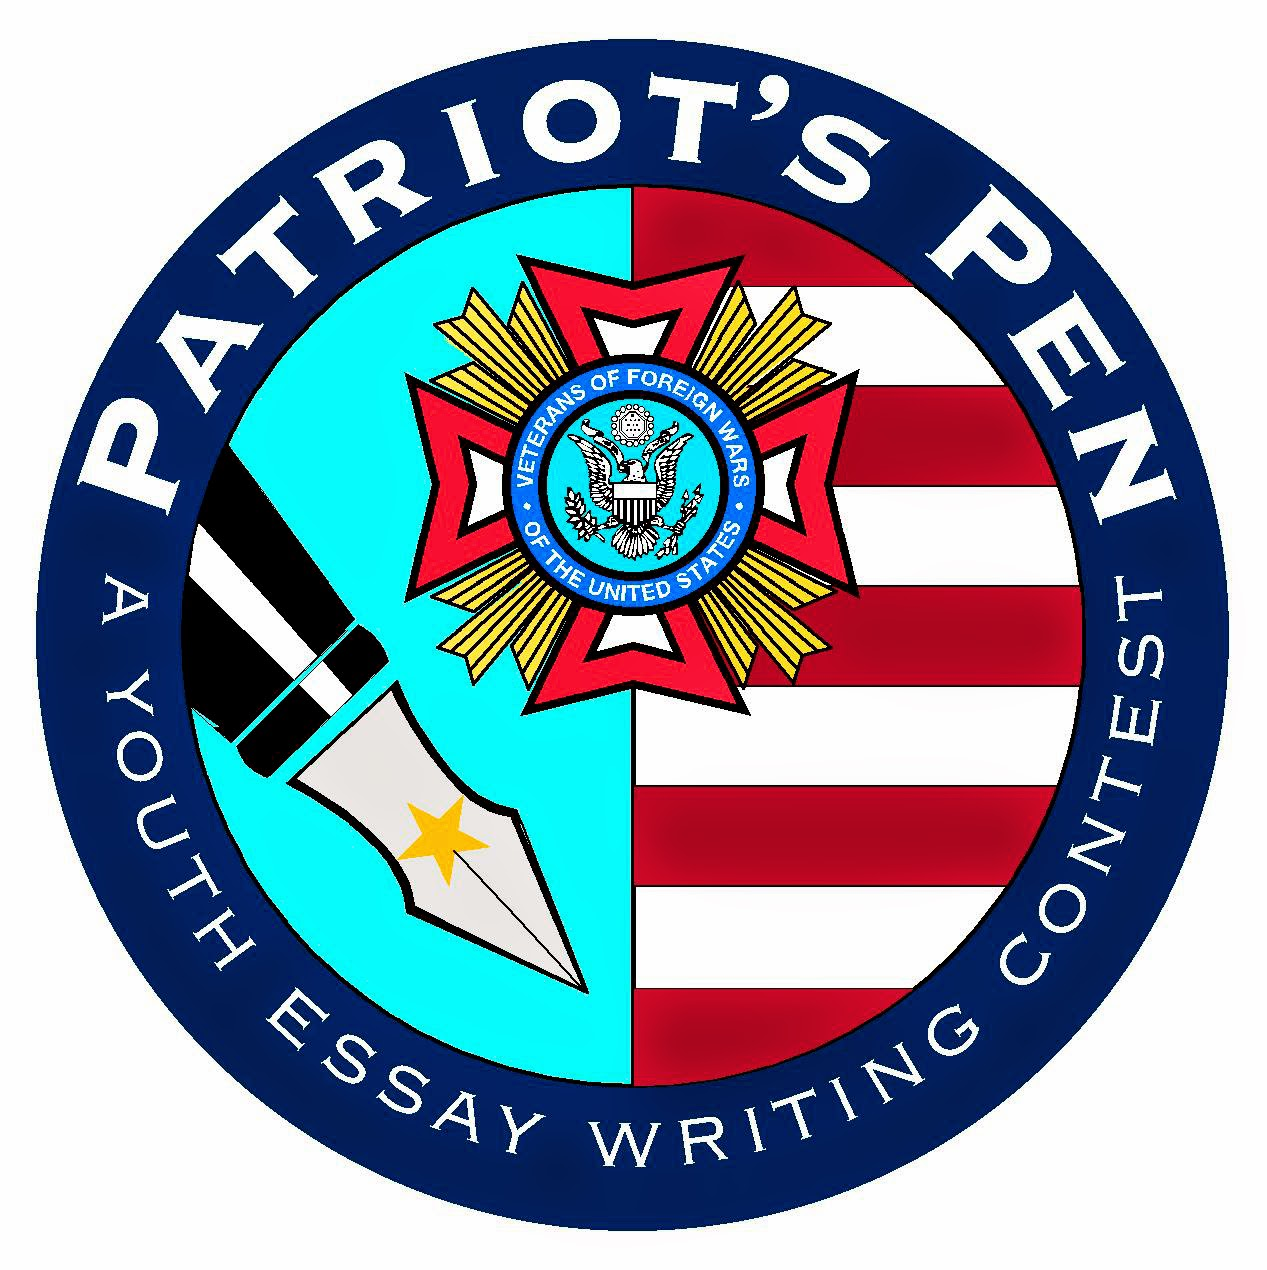 001 Patriots Pen Essay Contest Example Remarkable Patriot's 2018 Winners Vfw Entry Form Full